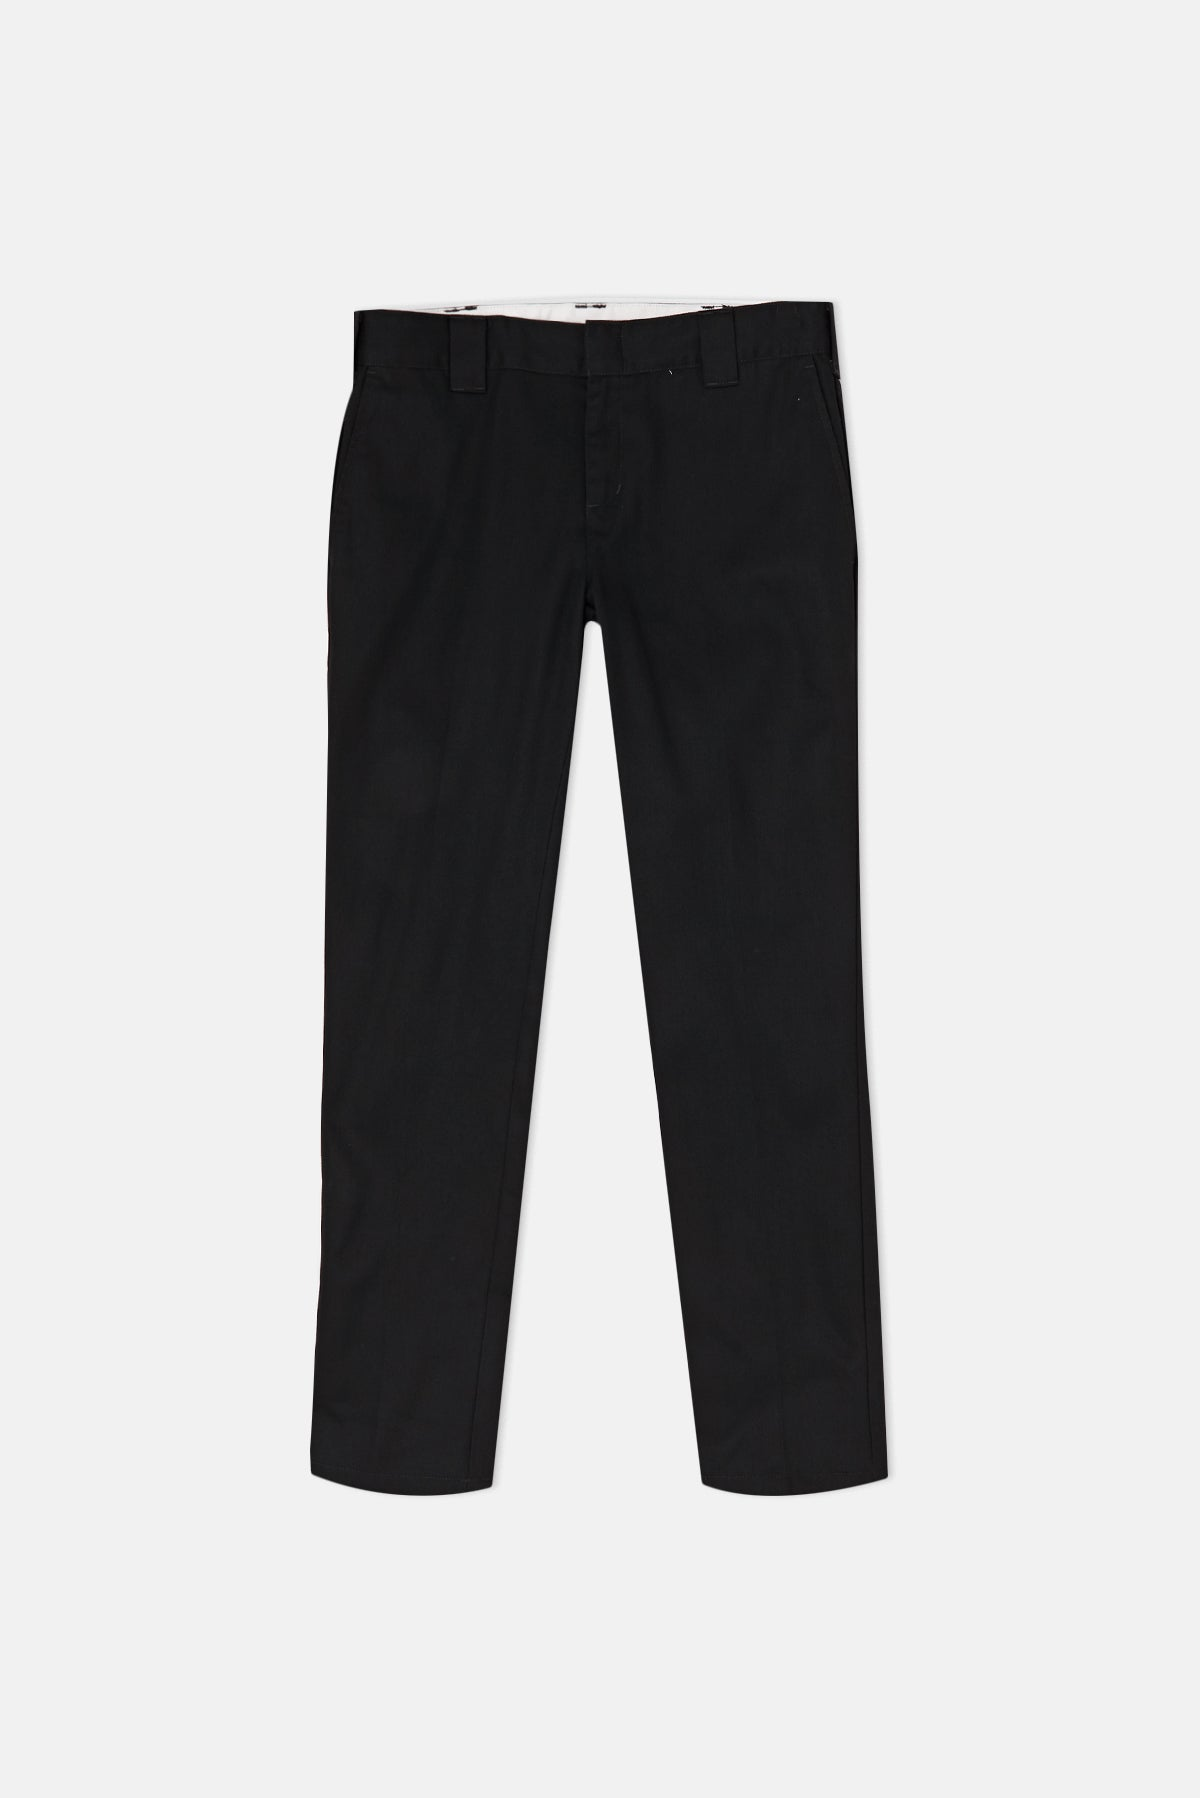 0705e90b336be8 Dickies WP872 Slim Fit Work Pant available from Priory